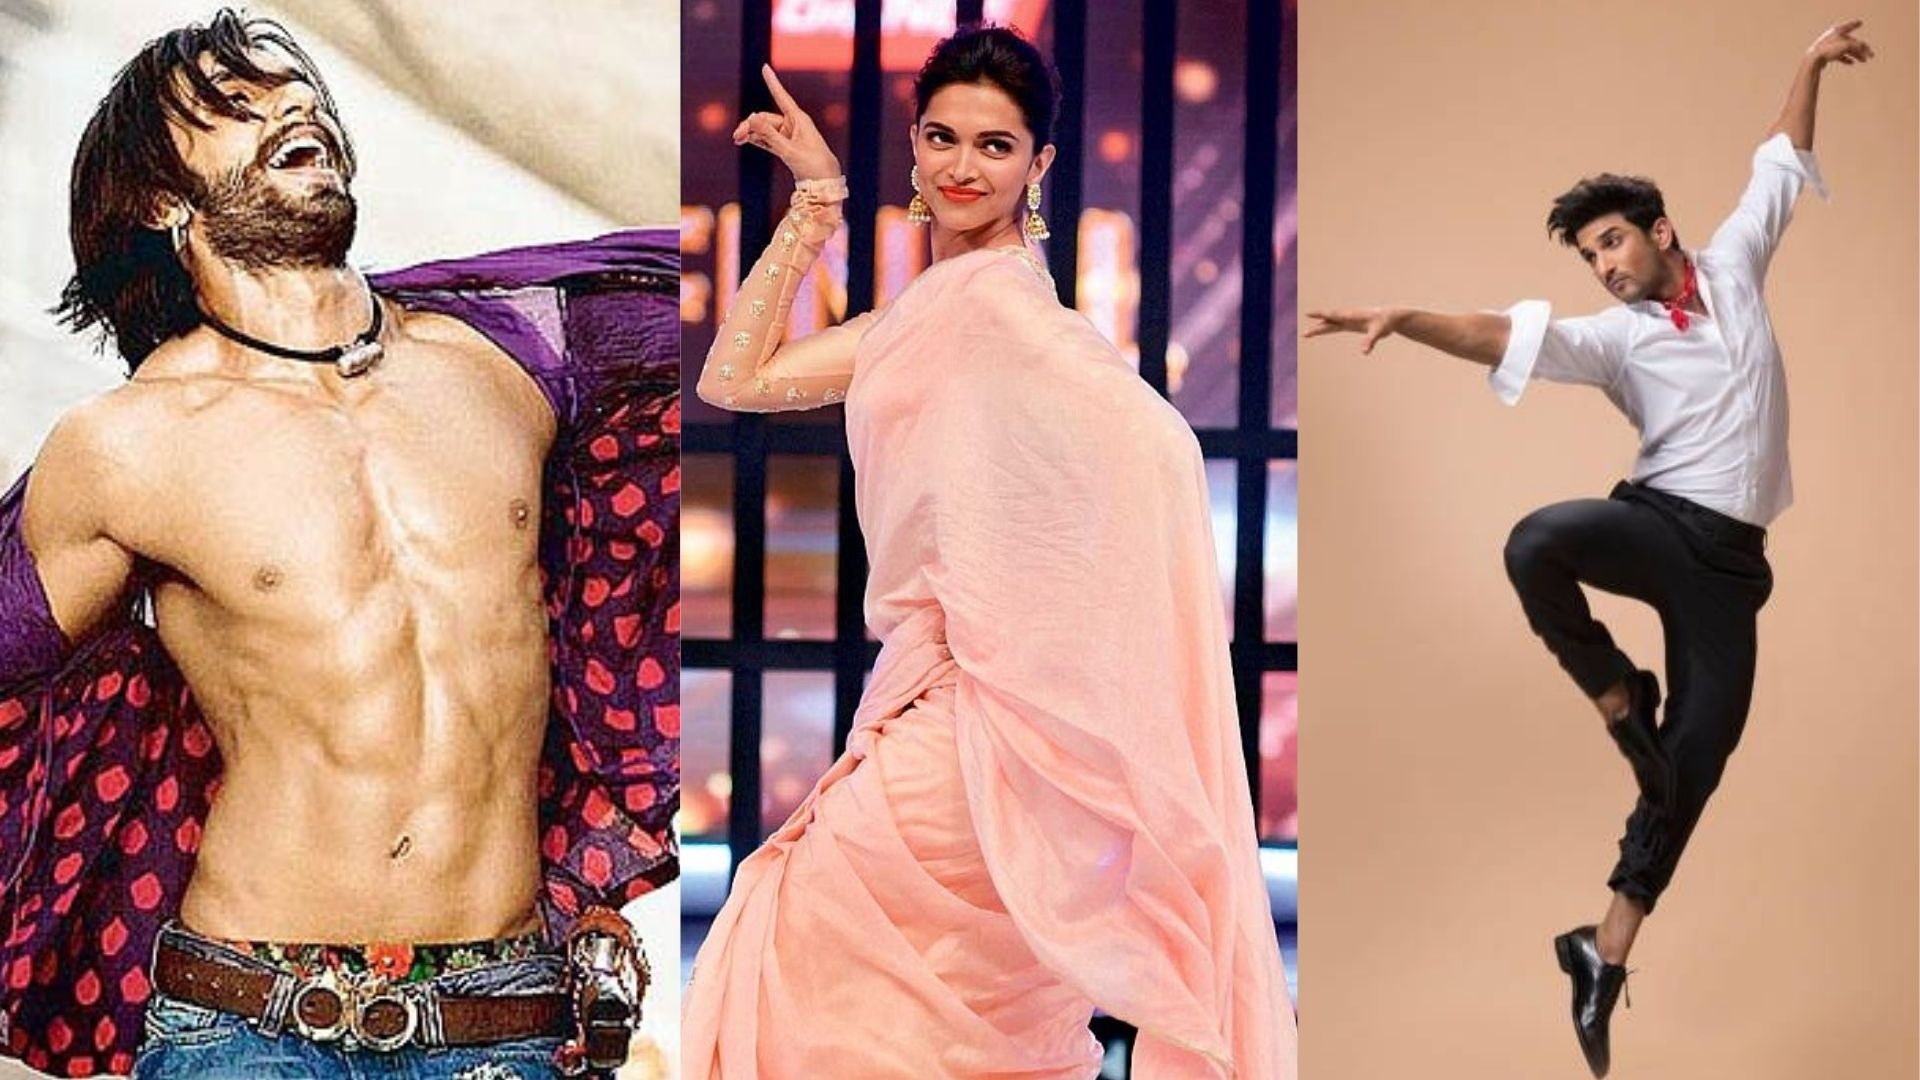 Did You Know These Bollywood Stars Were Once Background Dancers?